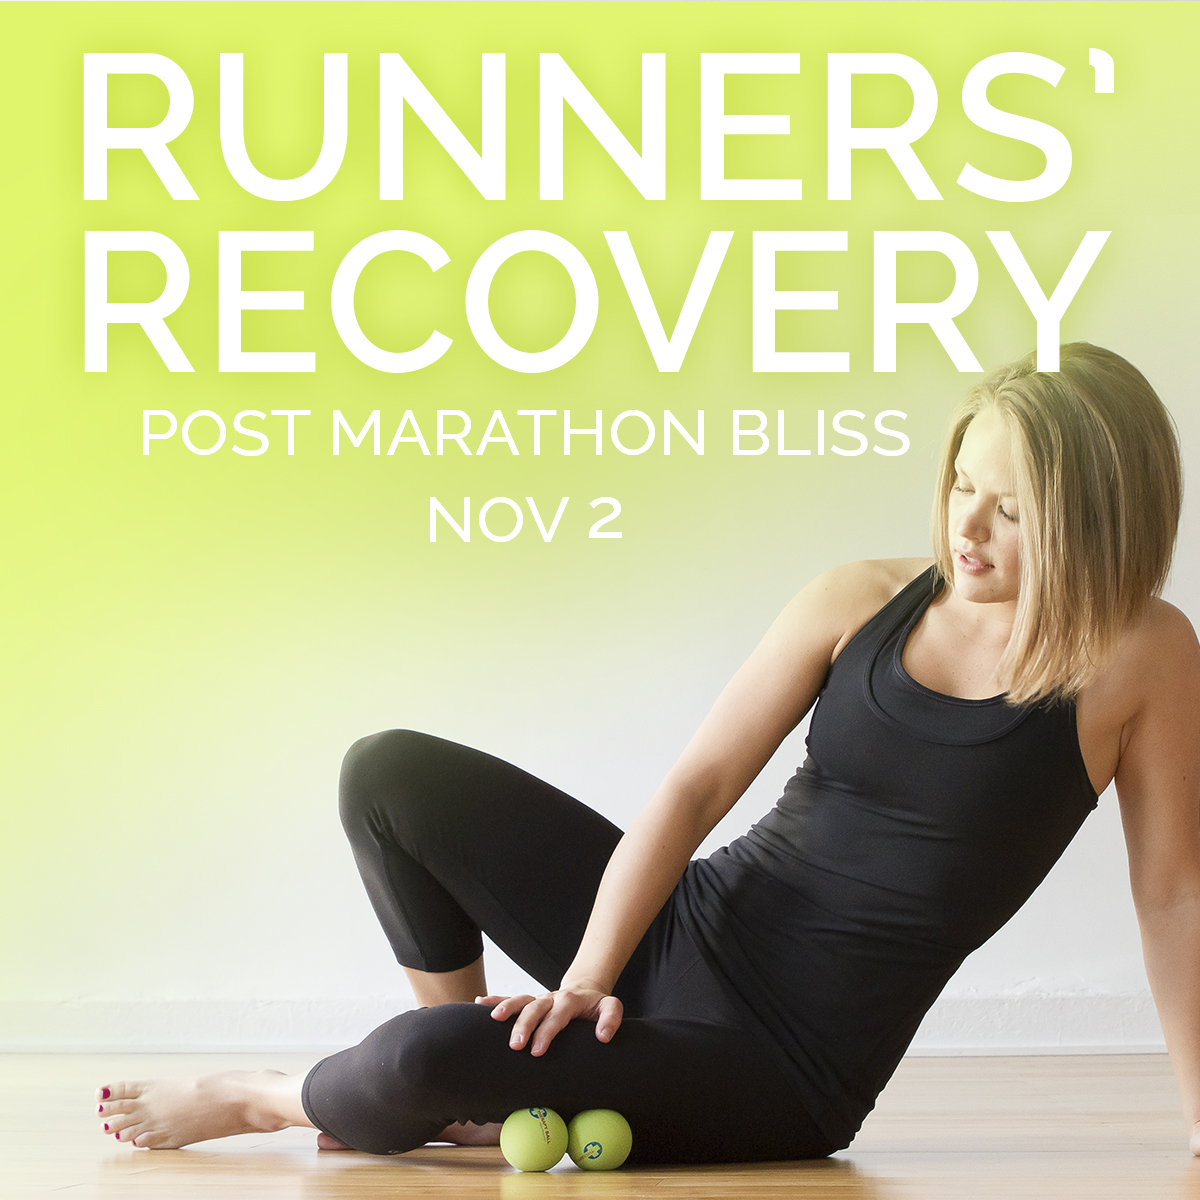 Runner's Recovery